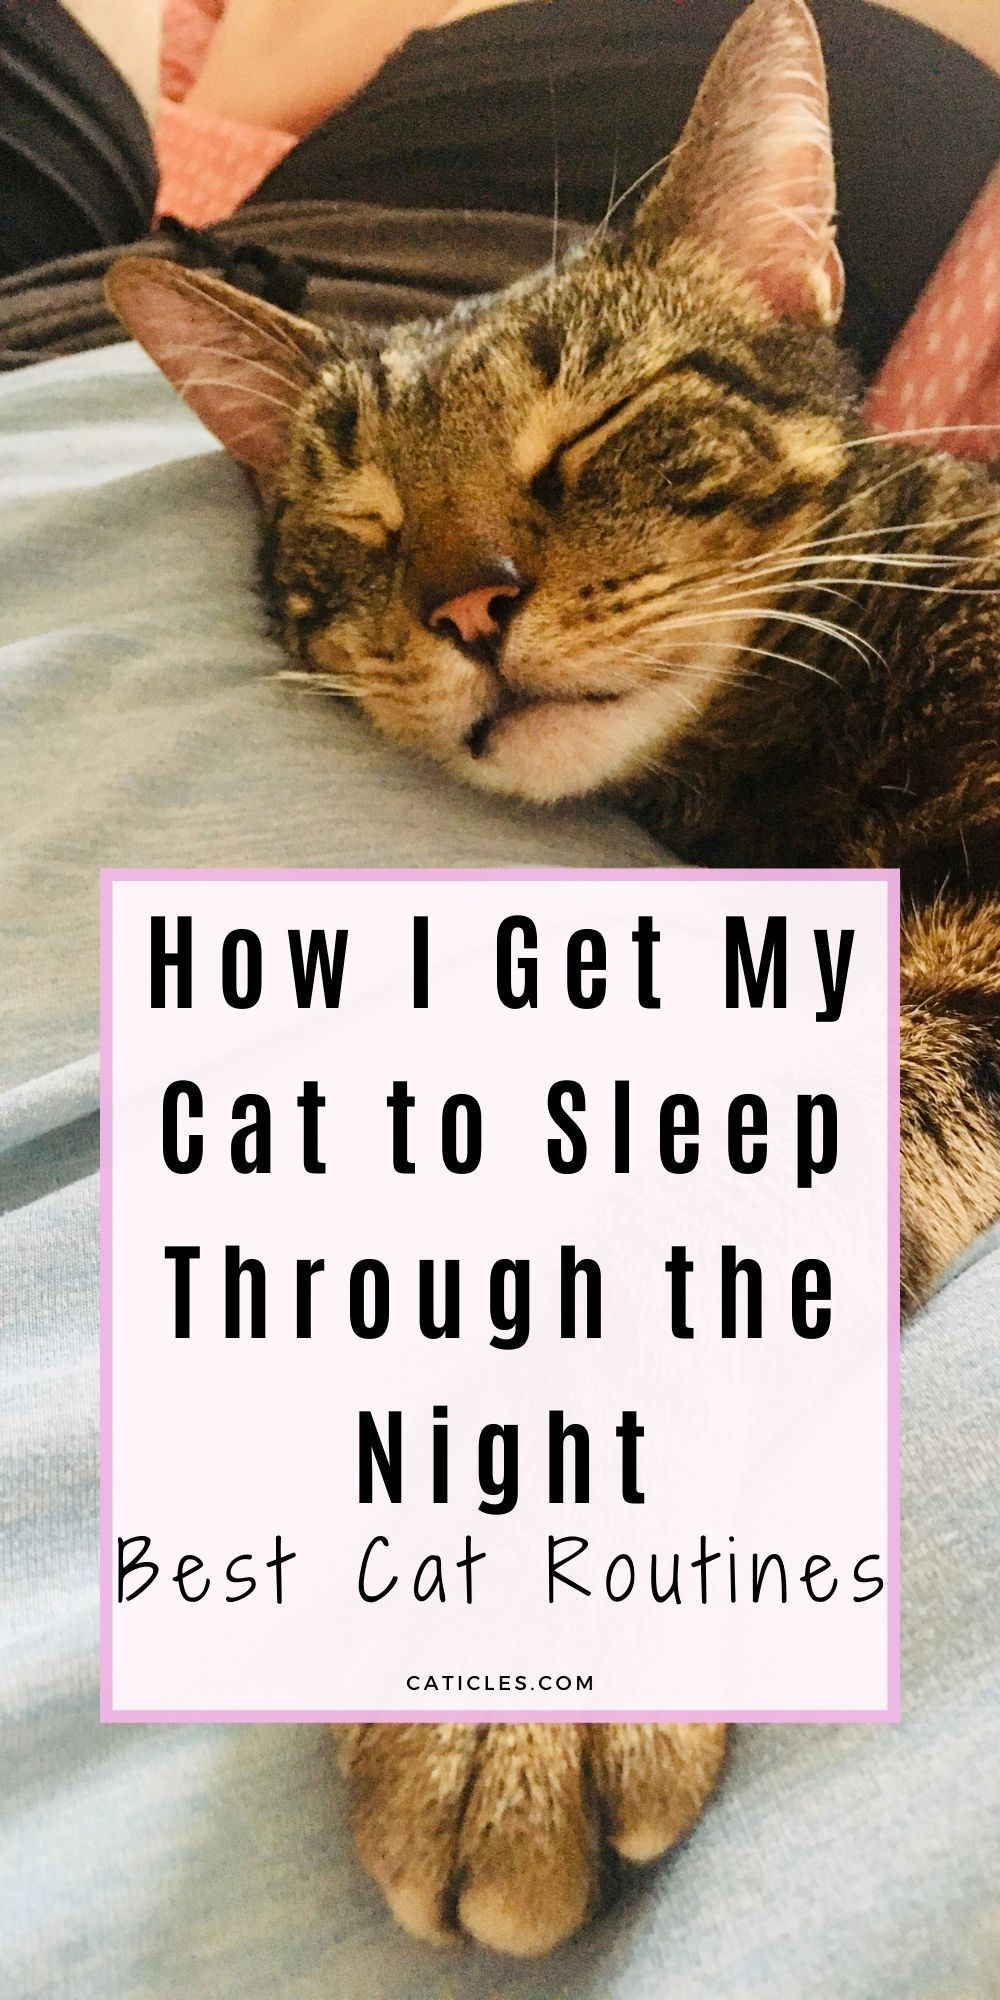 Cat Rituals That Stop Your Cat From Waking You At 3 Am Caticles In 2020 Cat Keeps Meowing Cat Essentials Cat Care